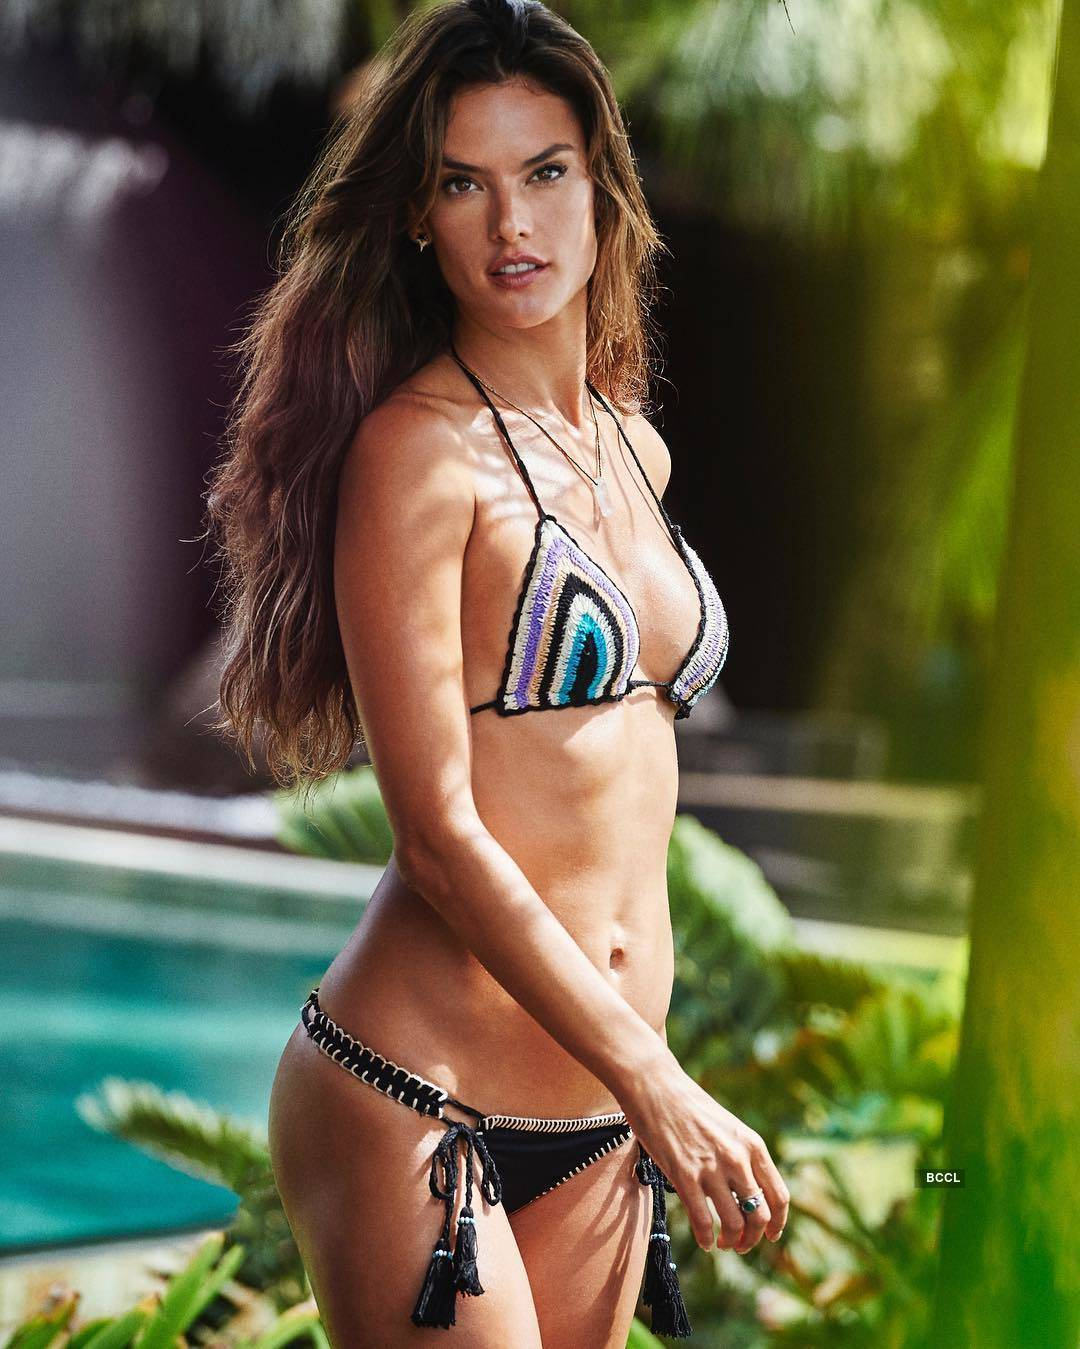 Alessandra Ambrósio ups the glam quotient with her bewitching photos